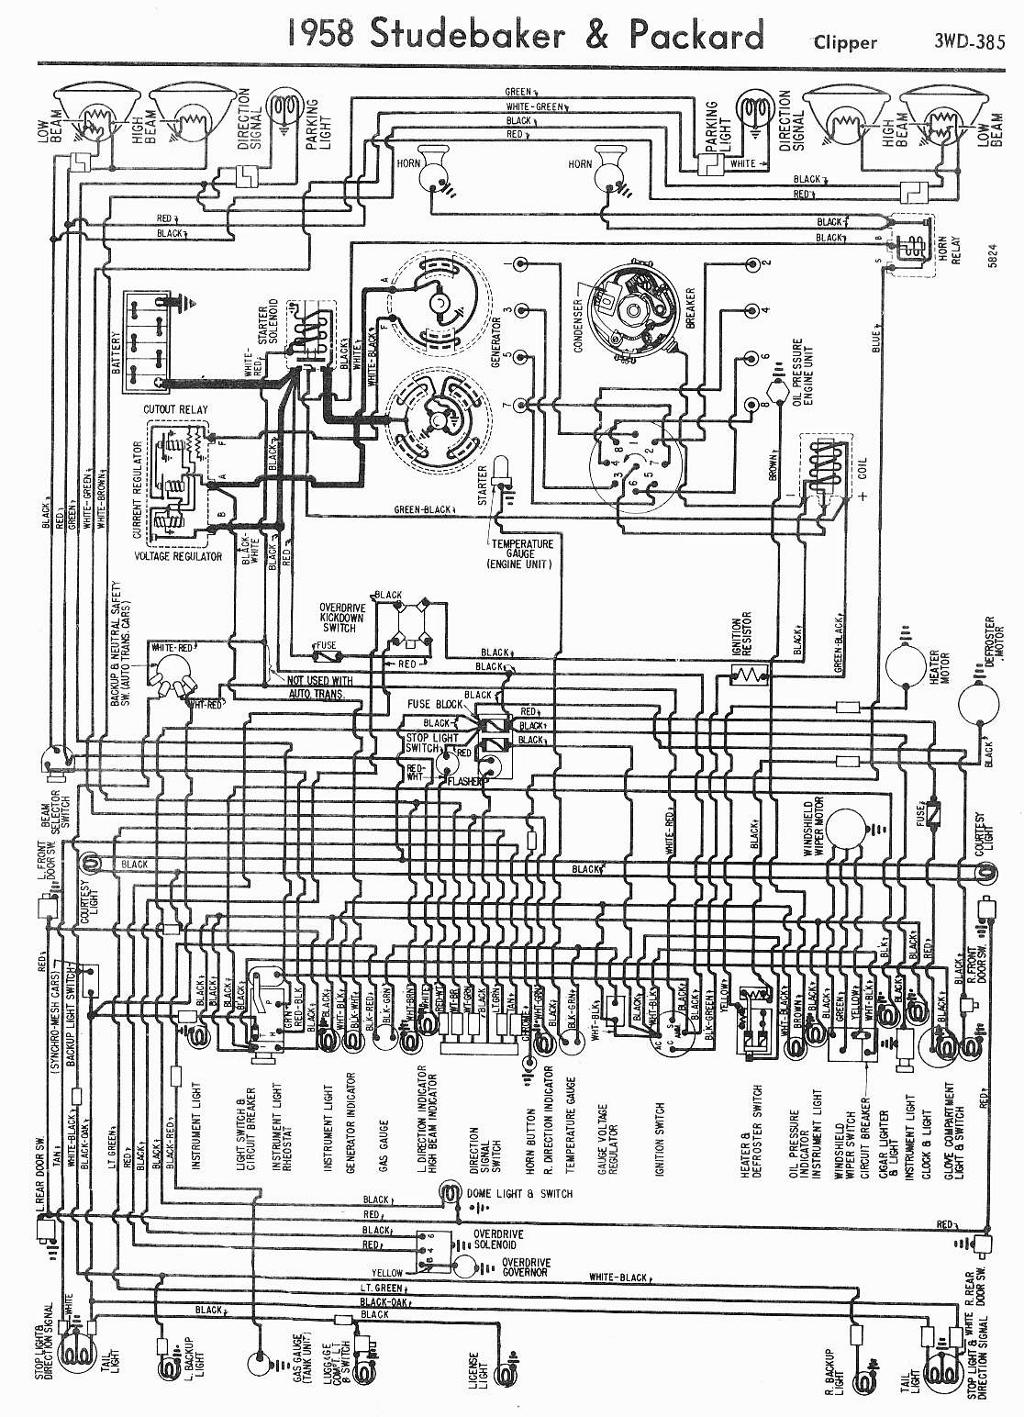 Packard Car Manuals Wiring Diagrams Pdf Fault Codes 1946 Willys Schematic Download